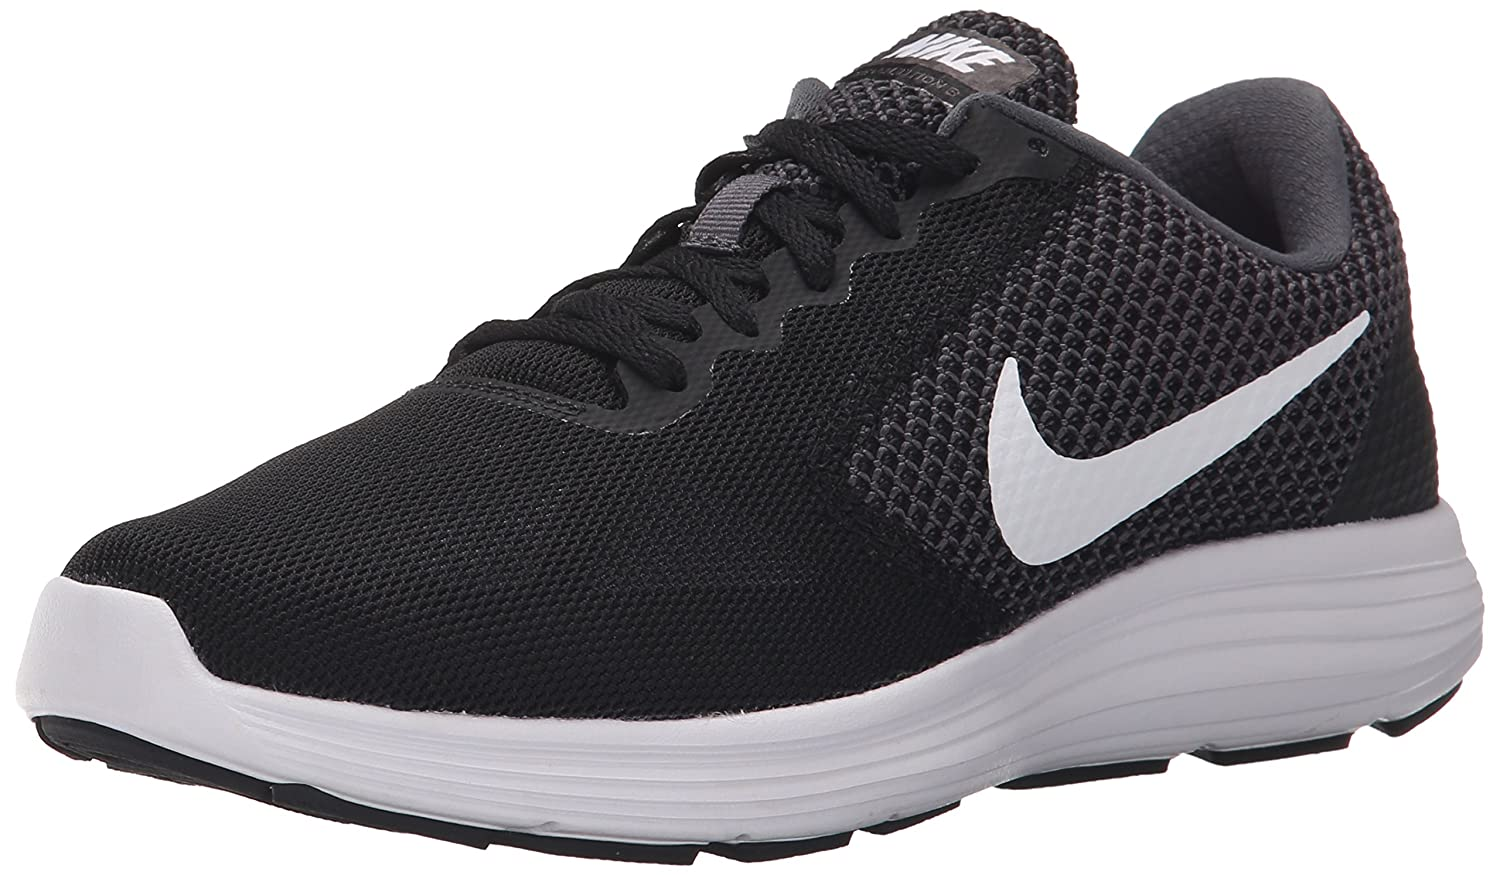 43c099a4c2 Amazon.com | NIKE Women's Revolution 3 Running Shoe | Running